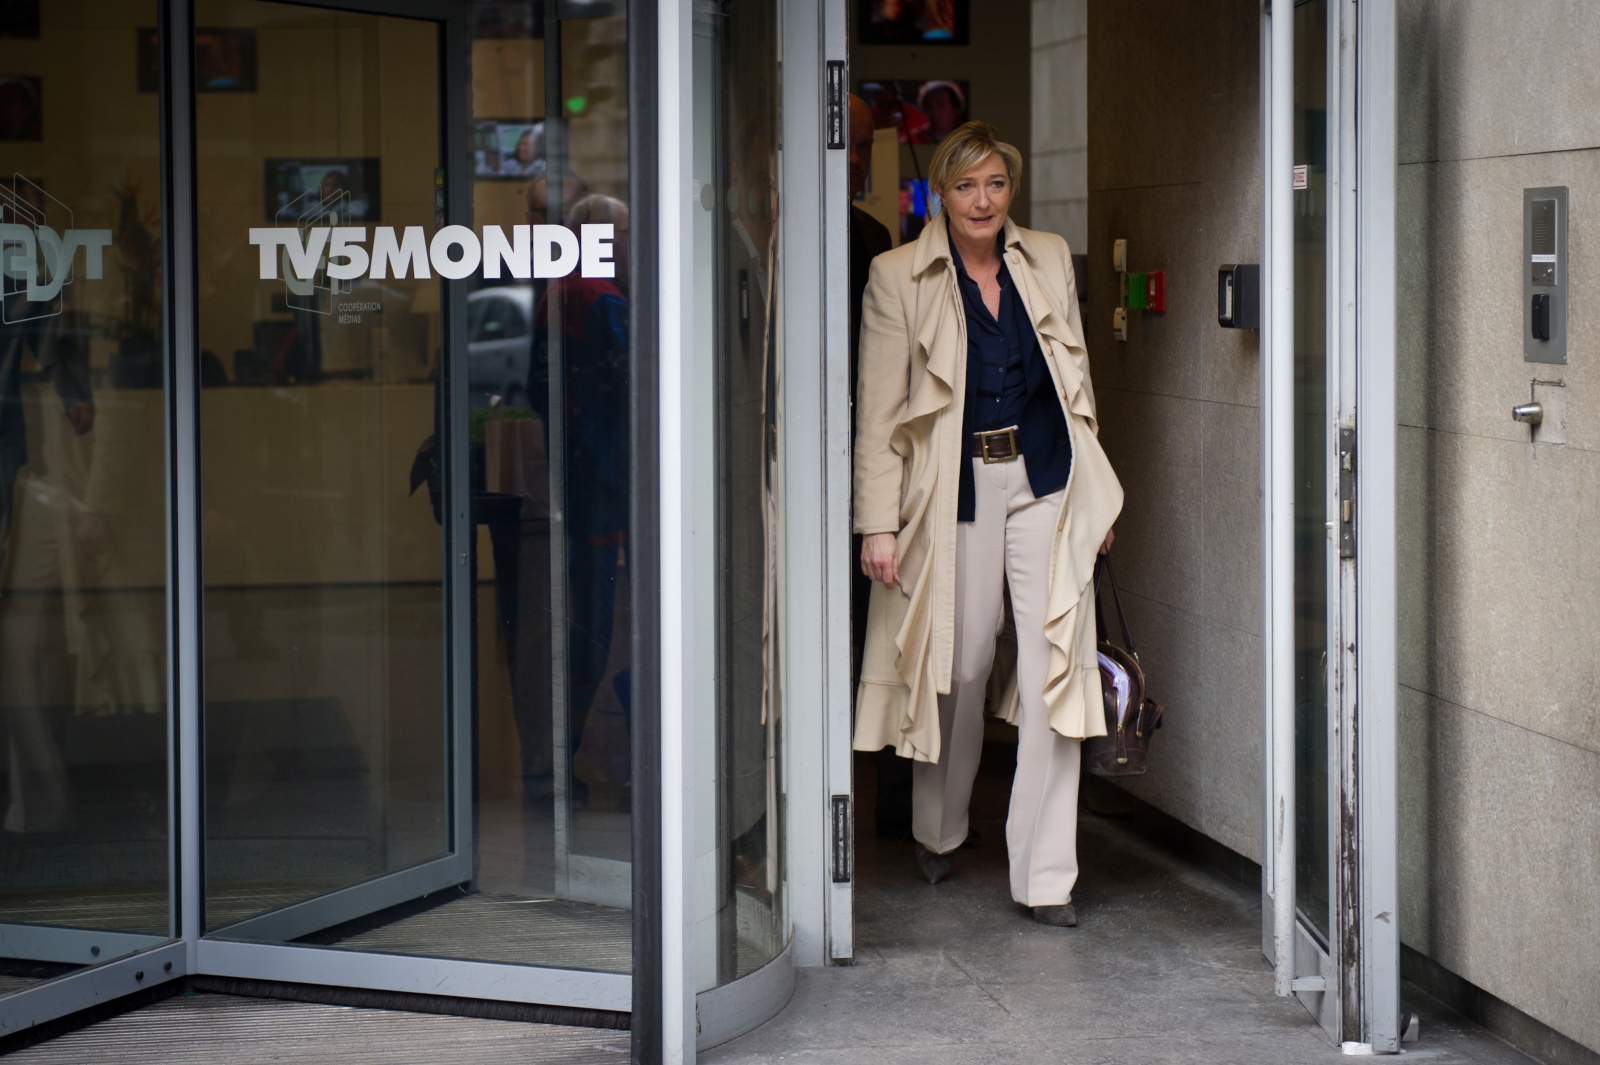 Russian Hackers blamed for TV5 Monde cyberattack